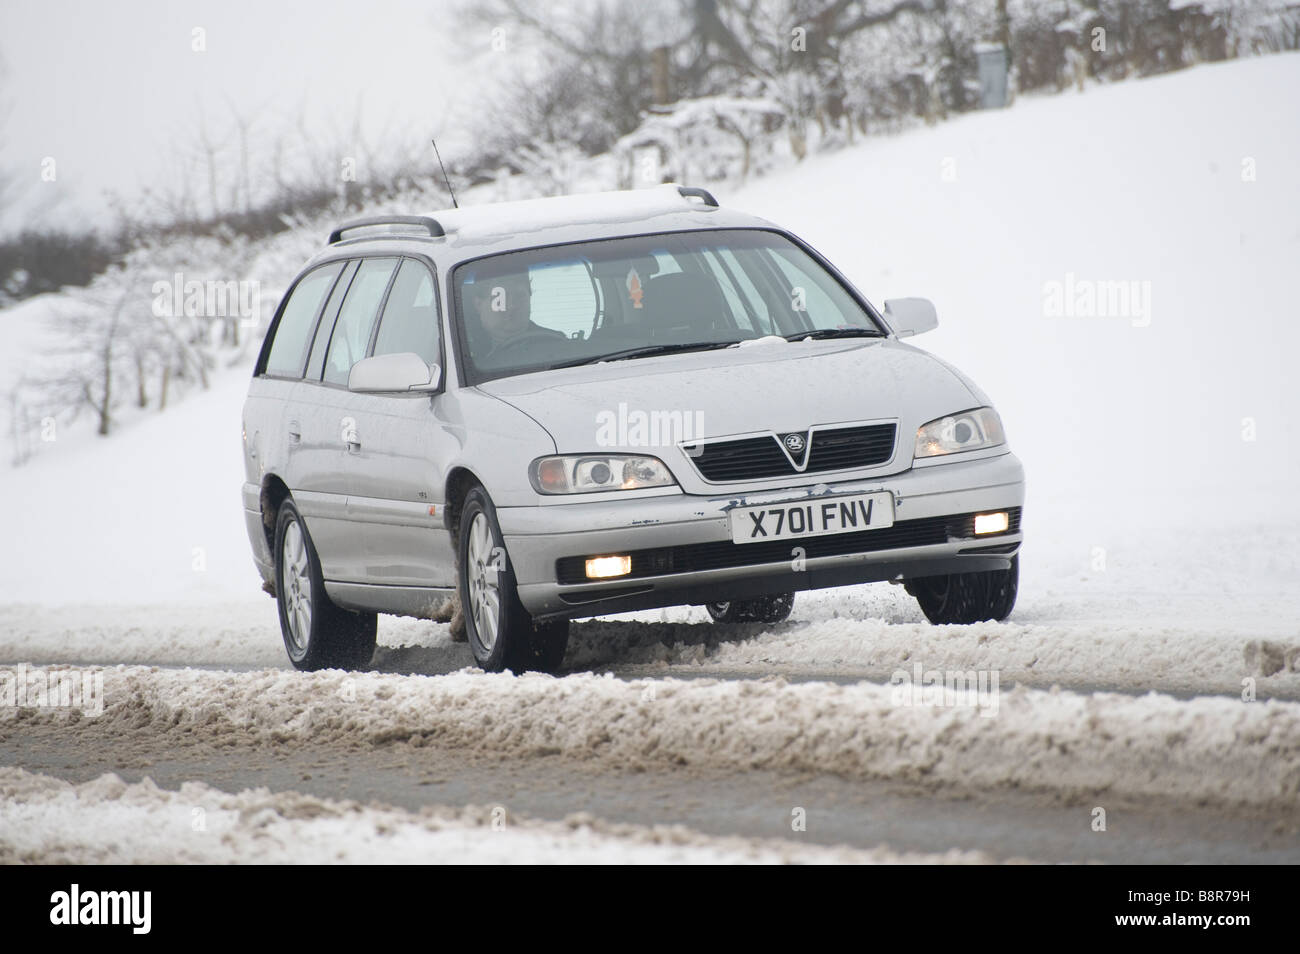 Silver vauxhall car being driven on snow covered roads in the English countryside - Stock Image